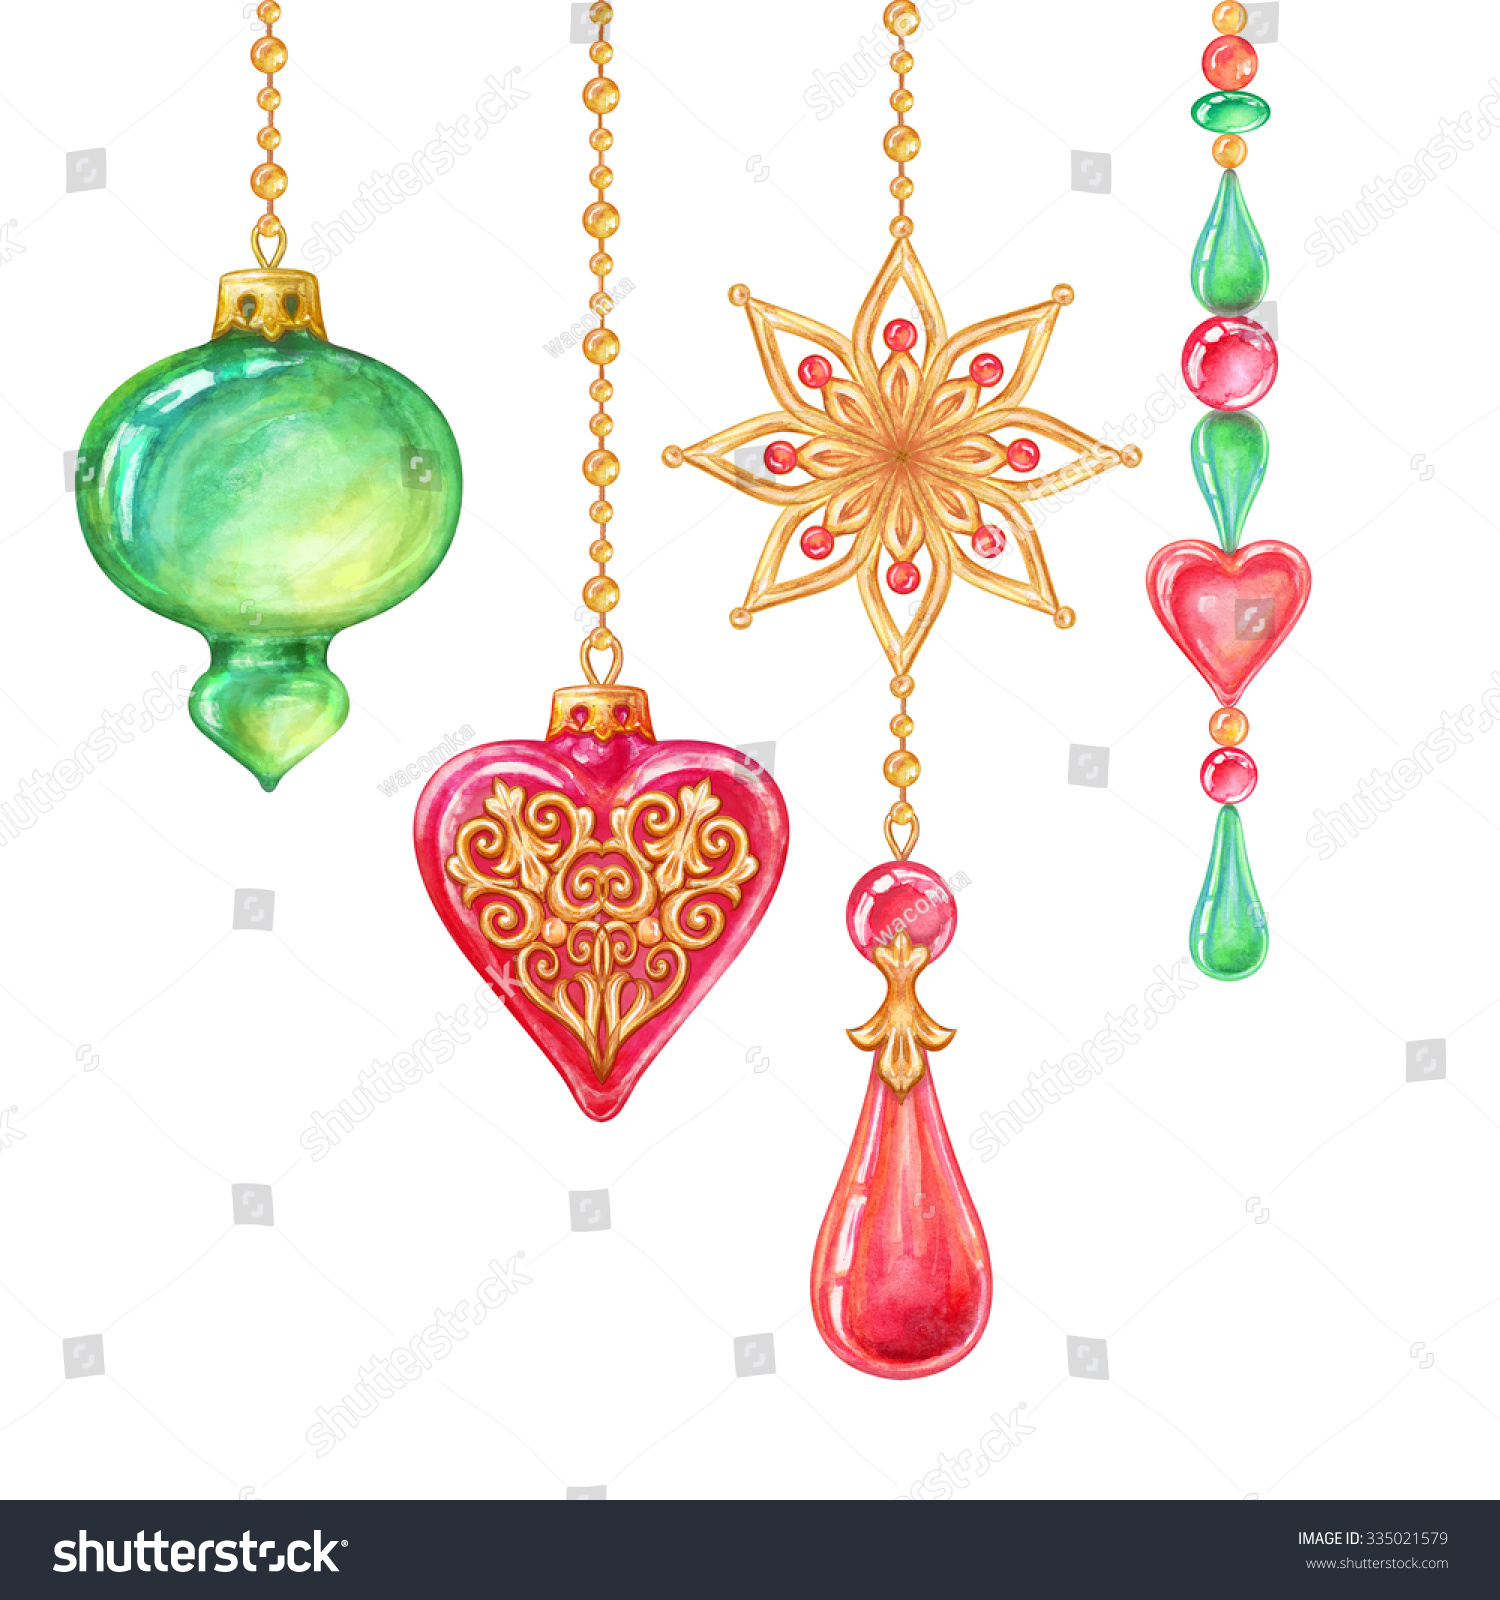 Royalty free christmas tree hanging ornaments glass